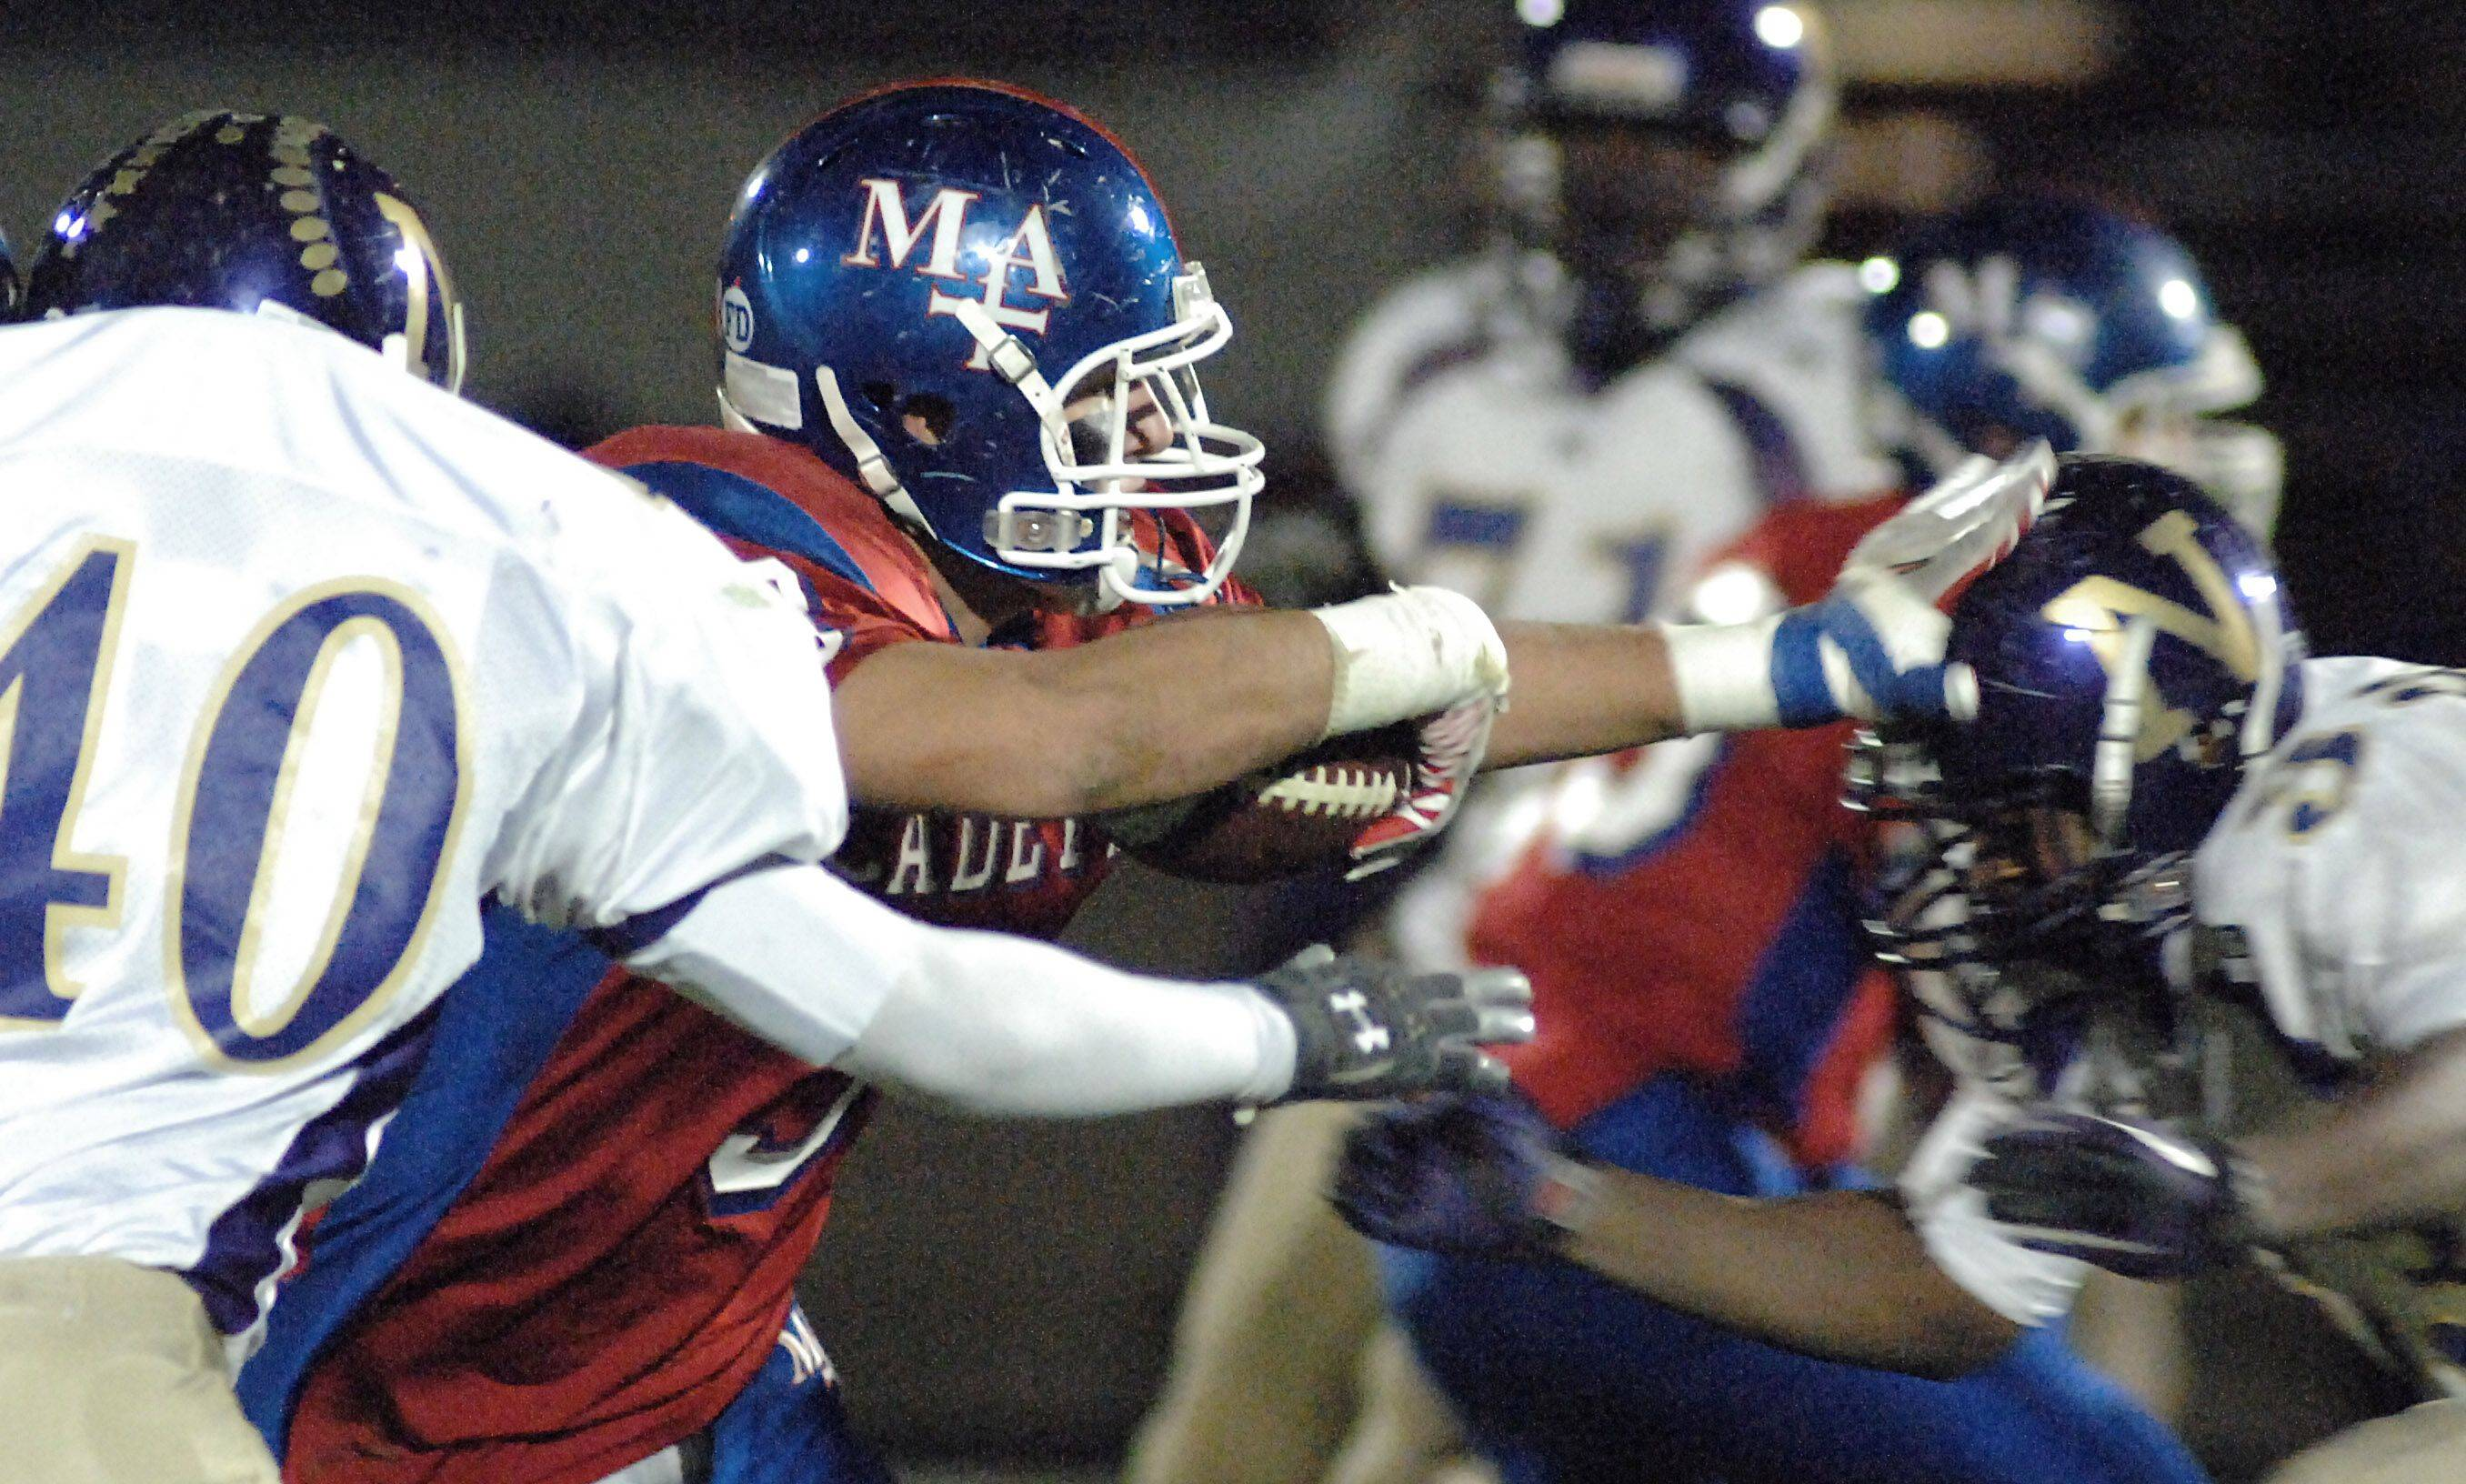 Marmion's Nick Scoliere strongarms Thorton Fractional North's Delon Perry in the second quarter on Friday, October 29.